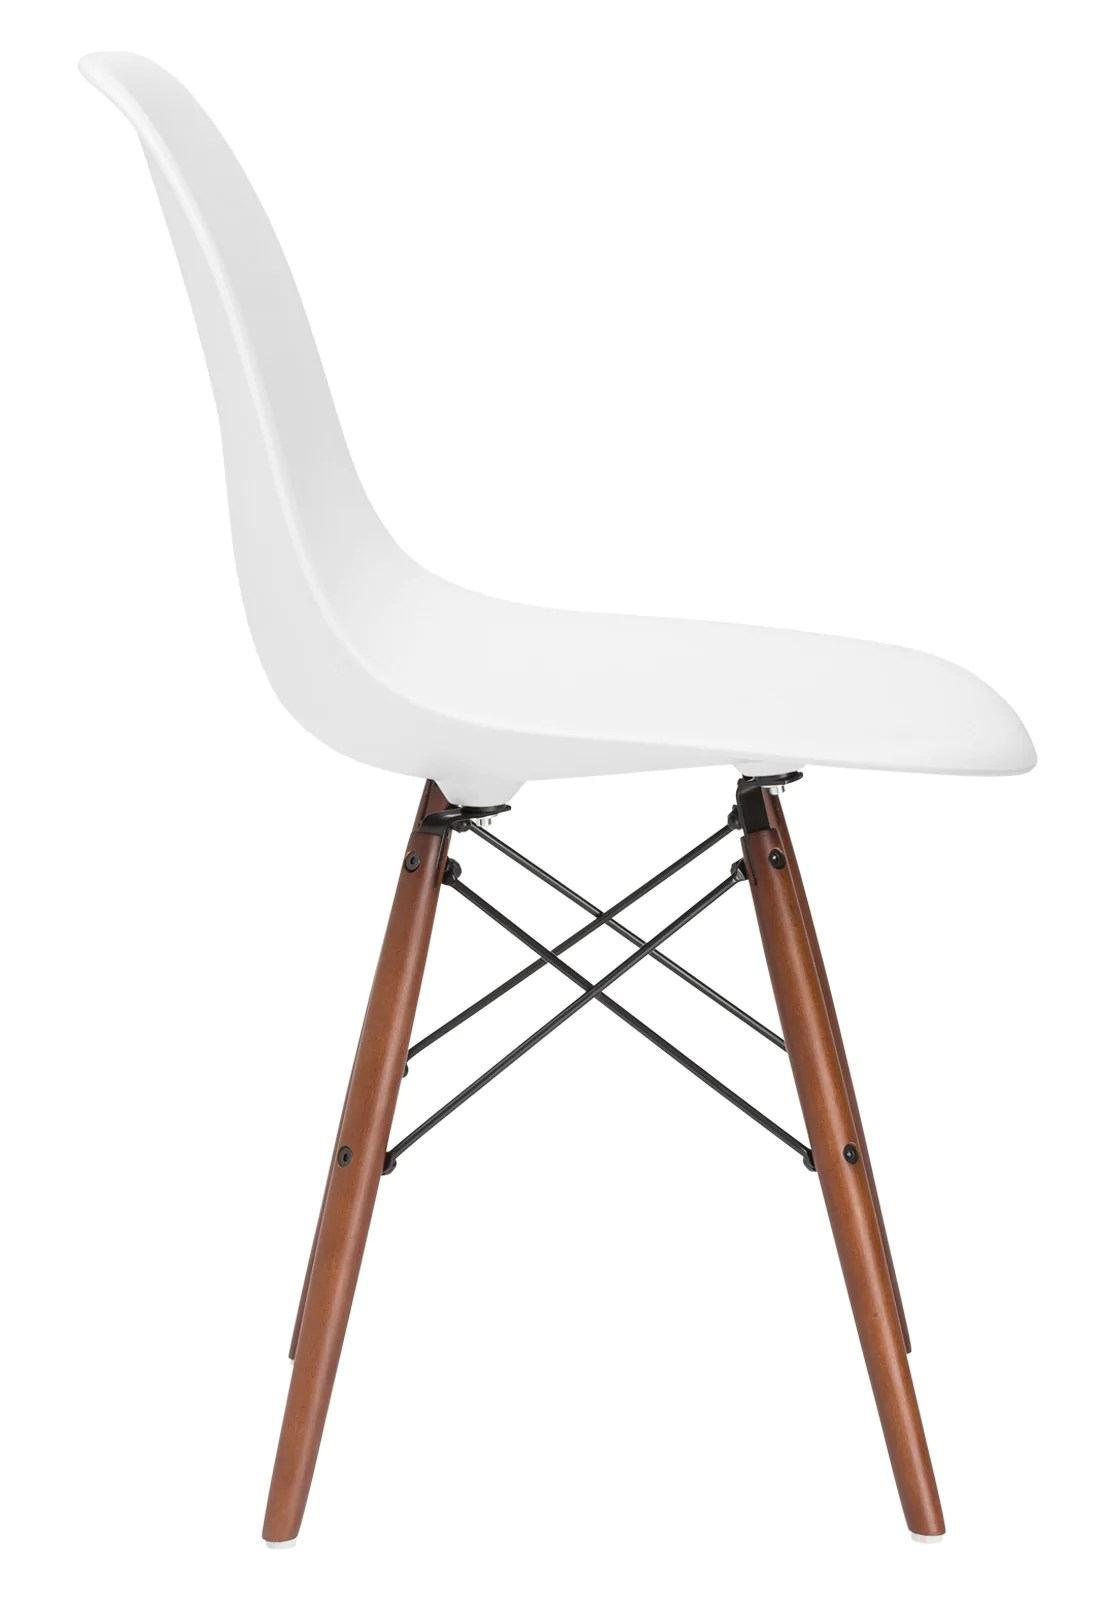 chair step stool ironing board game chairs with casters excellent classic t leg